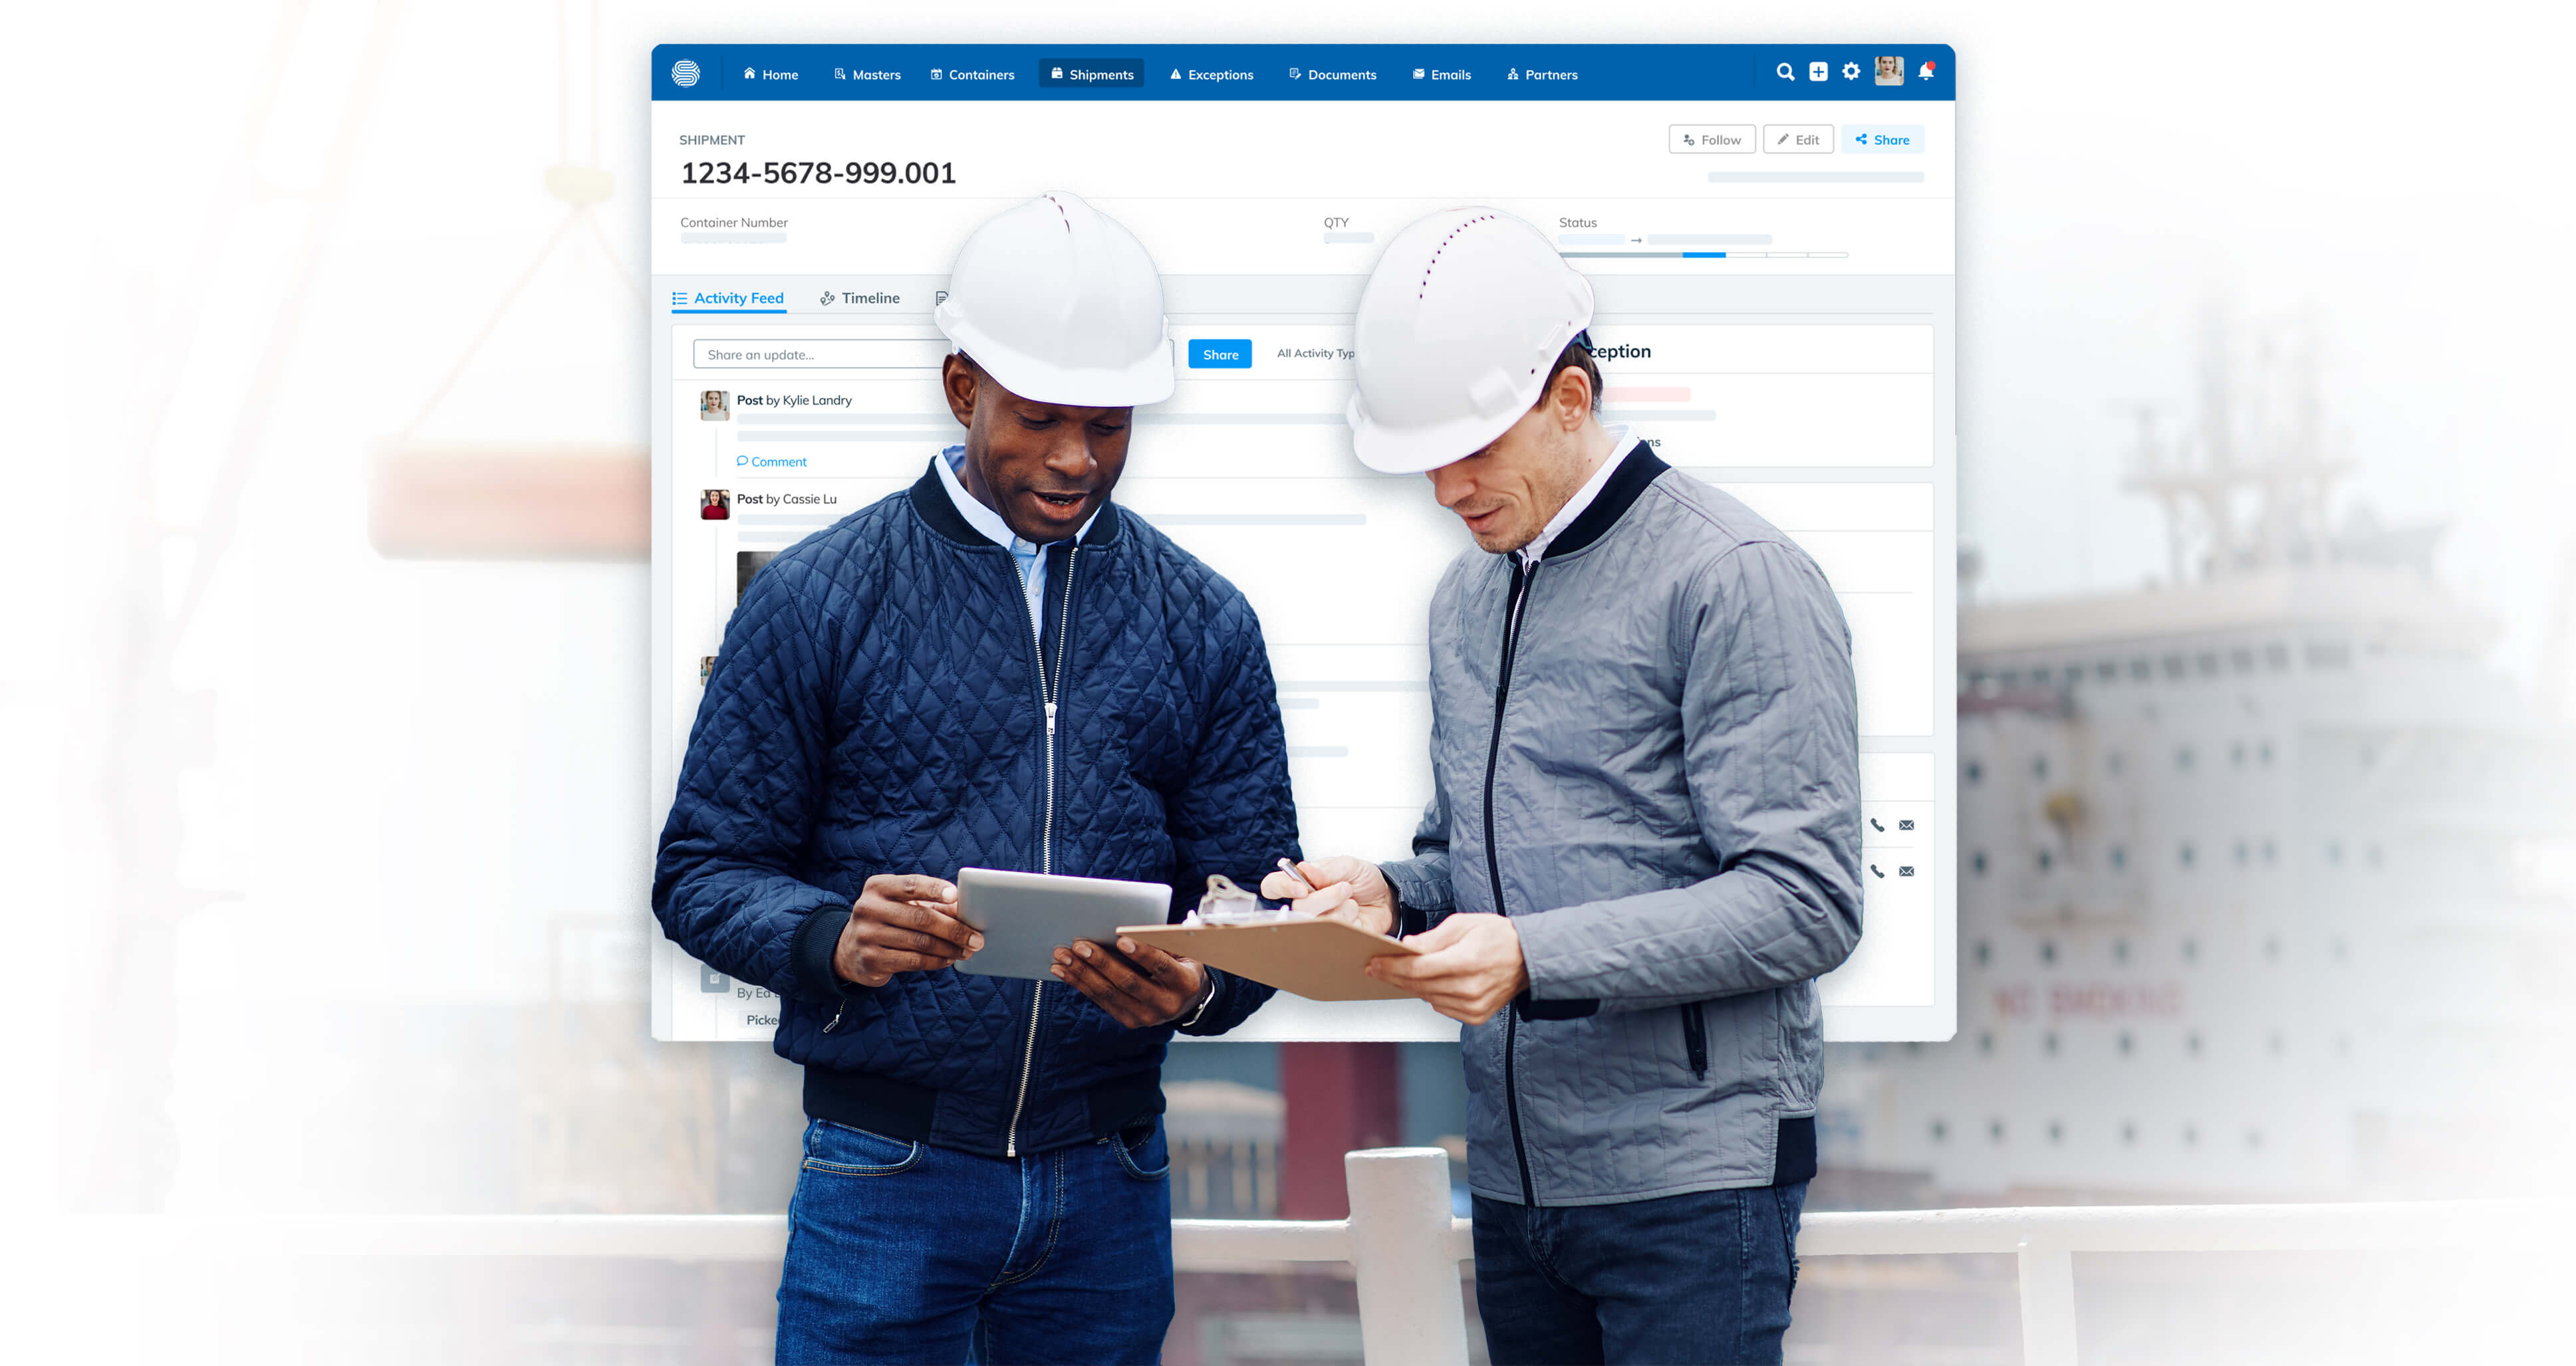 Slync.io, Logistics Orchestration®. Booking & Allocation Management by Slync.io is the only solution built to control the chaos so global forwarders can improve productivity, carrier accountability, and reduce costs. Dallas, Tx, Freight, Logistics, Platform, Consultation, Golf, Ice Hockey, global logistics